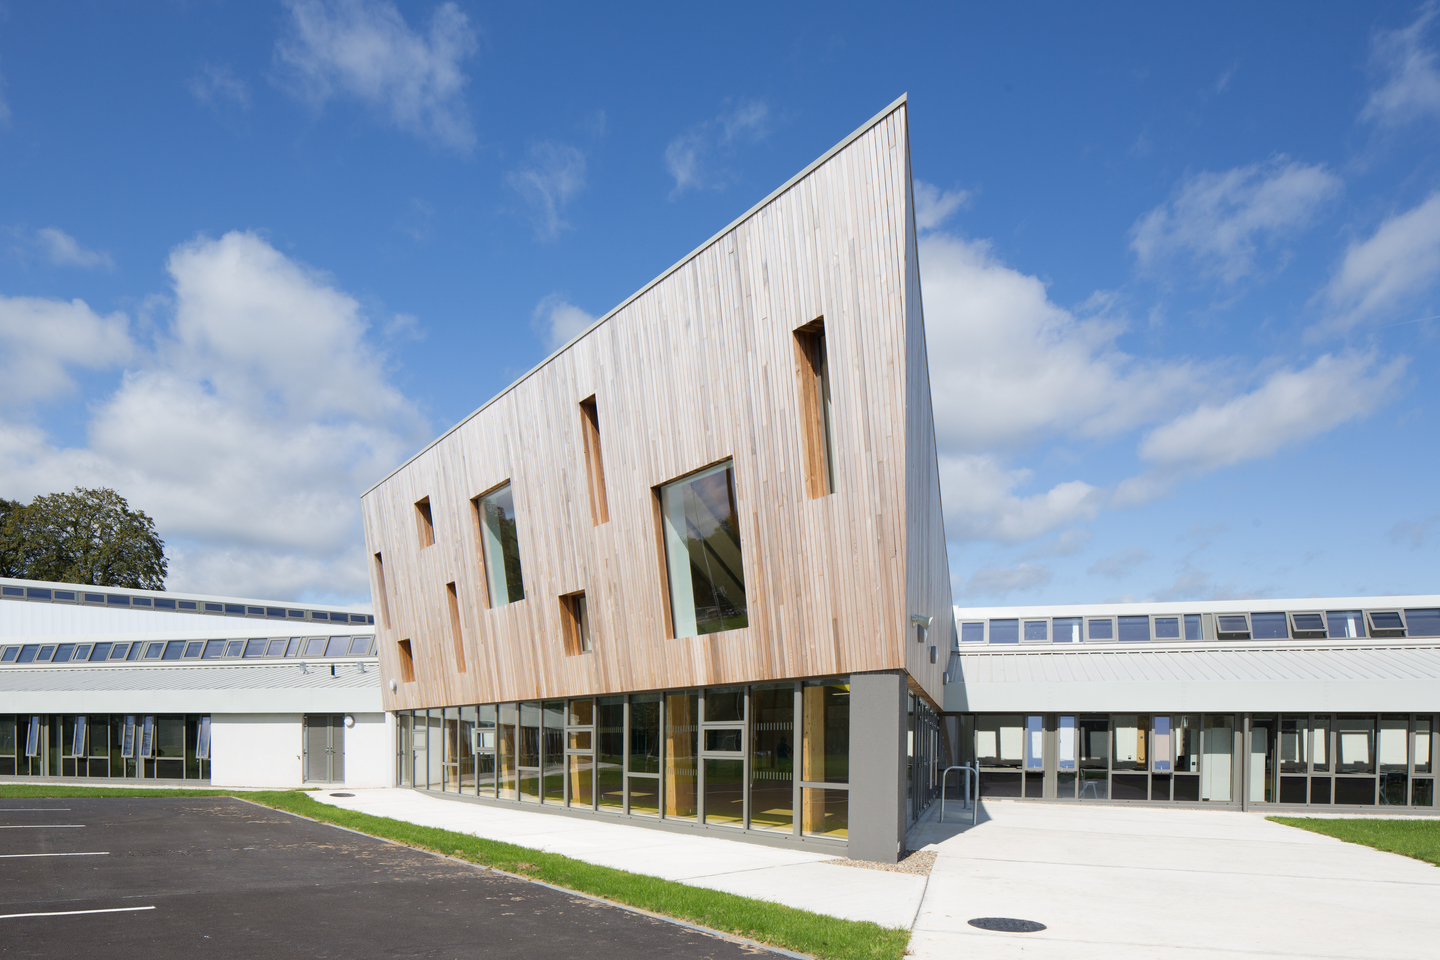 St Anne's Community College in Killaloe, County Clare is home to more than 500 students